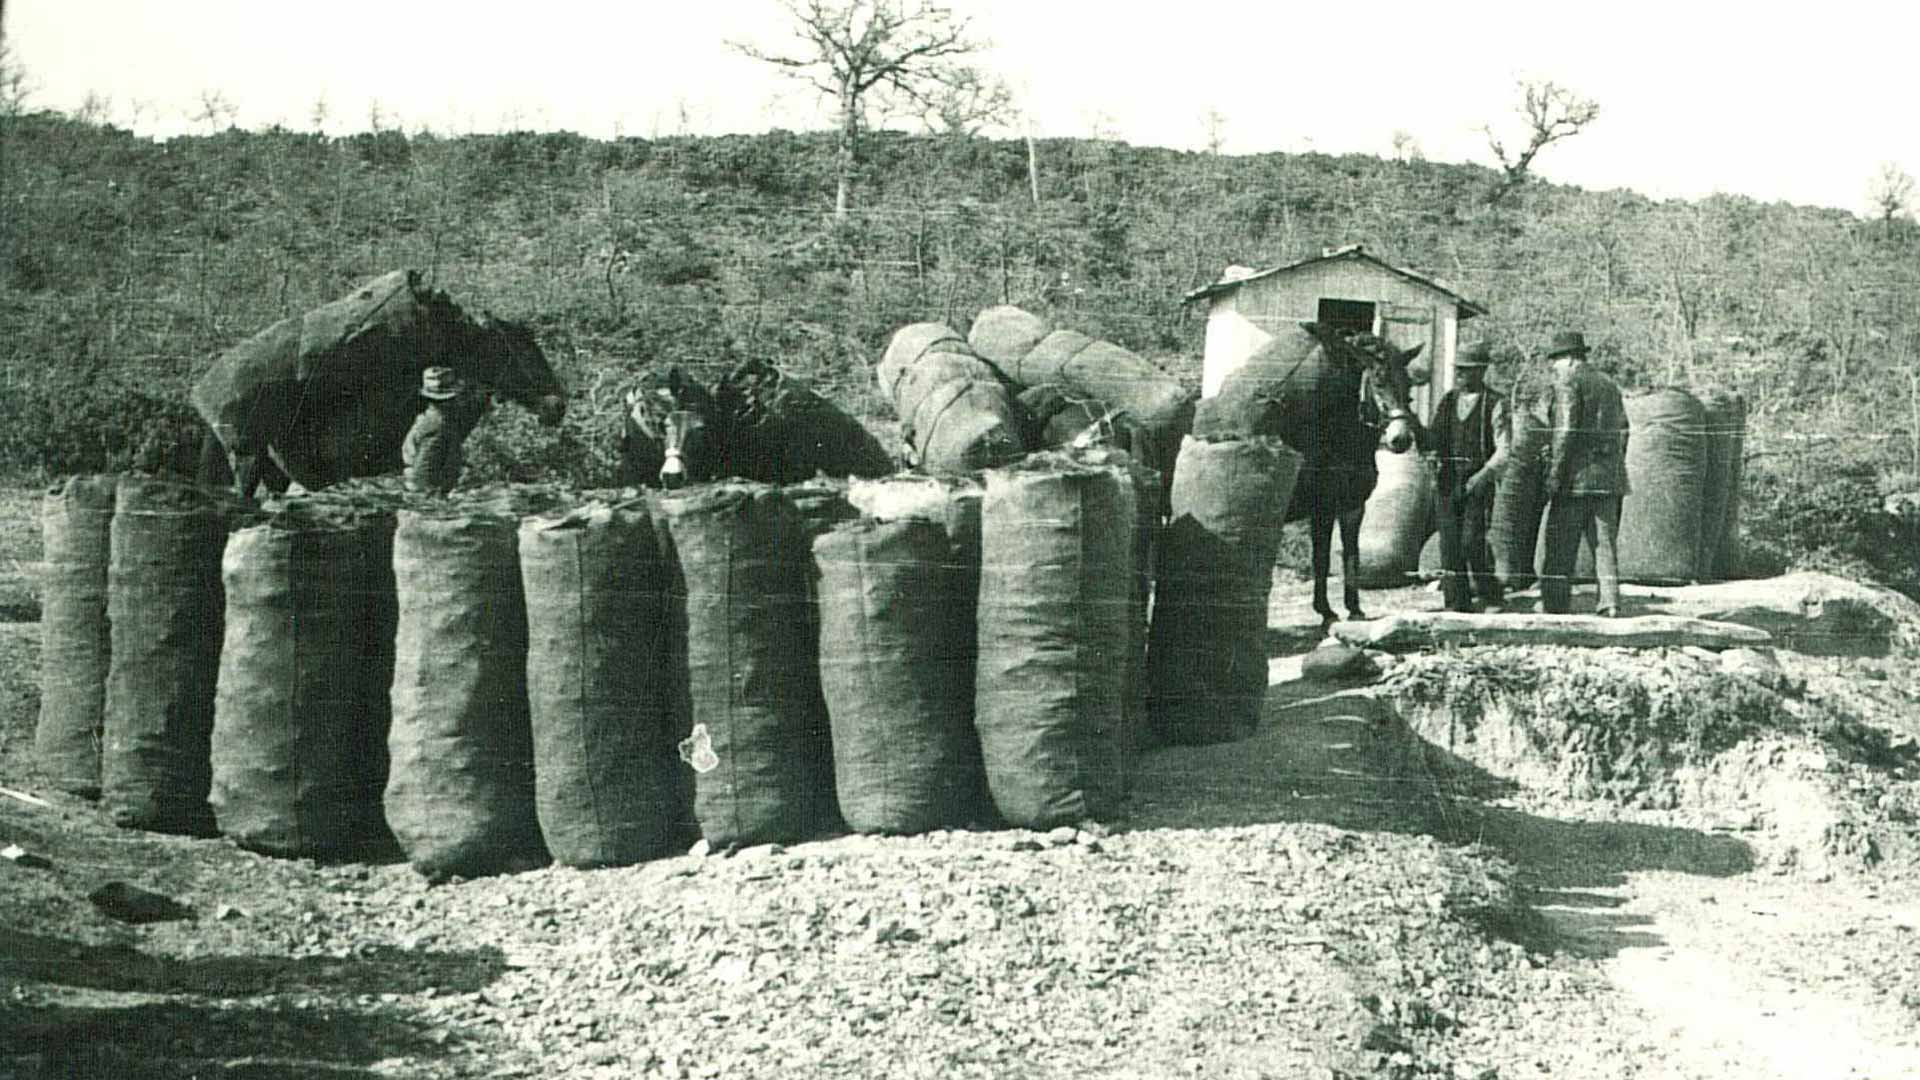 Forest charcoal production. Margaritelli's Photographic Archive.